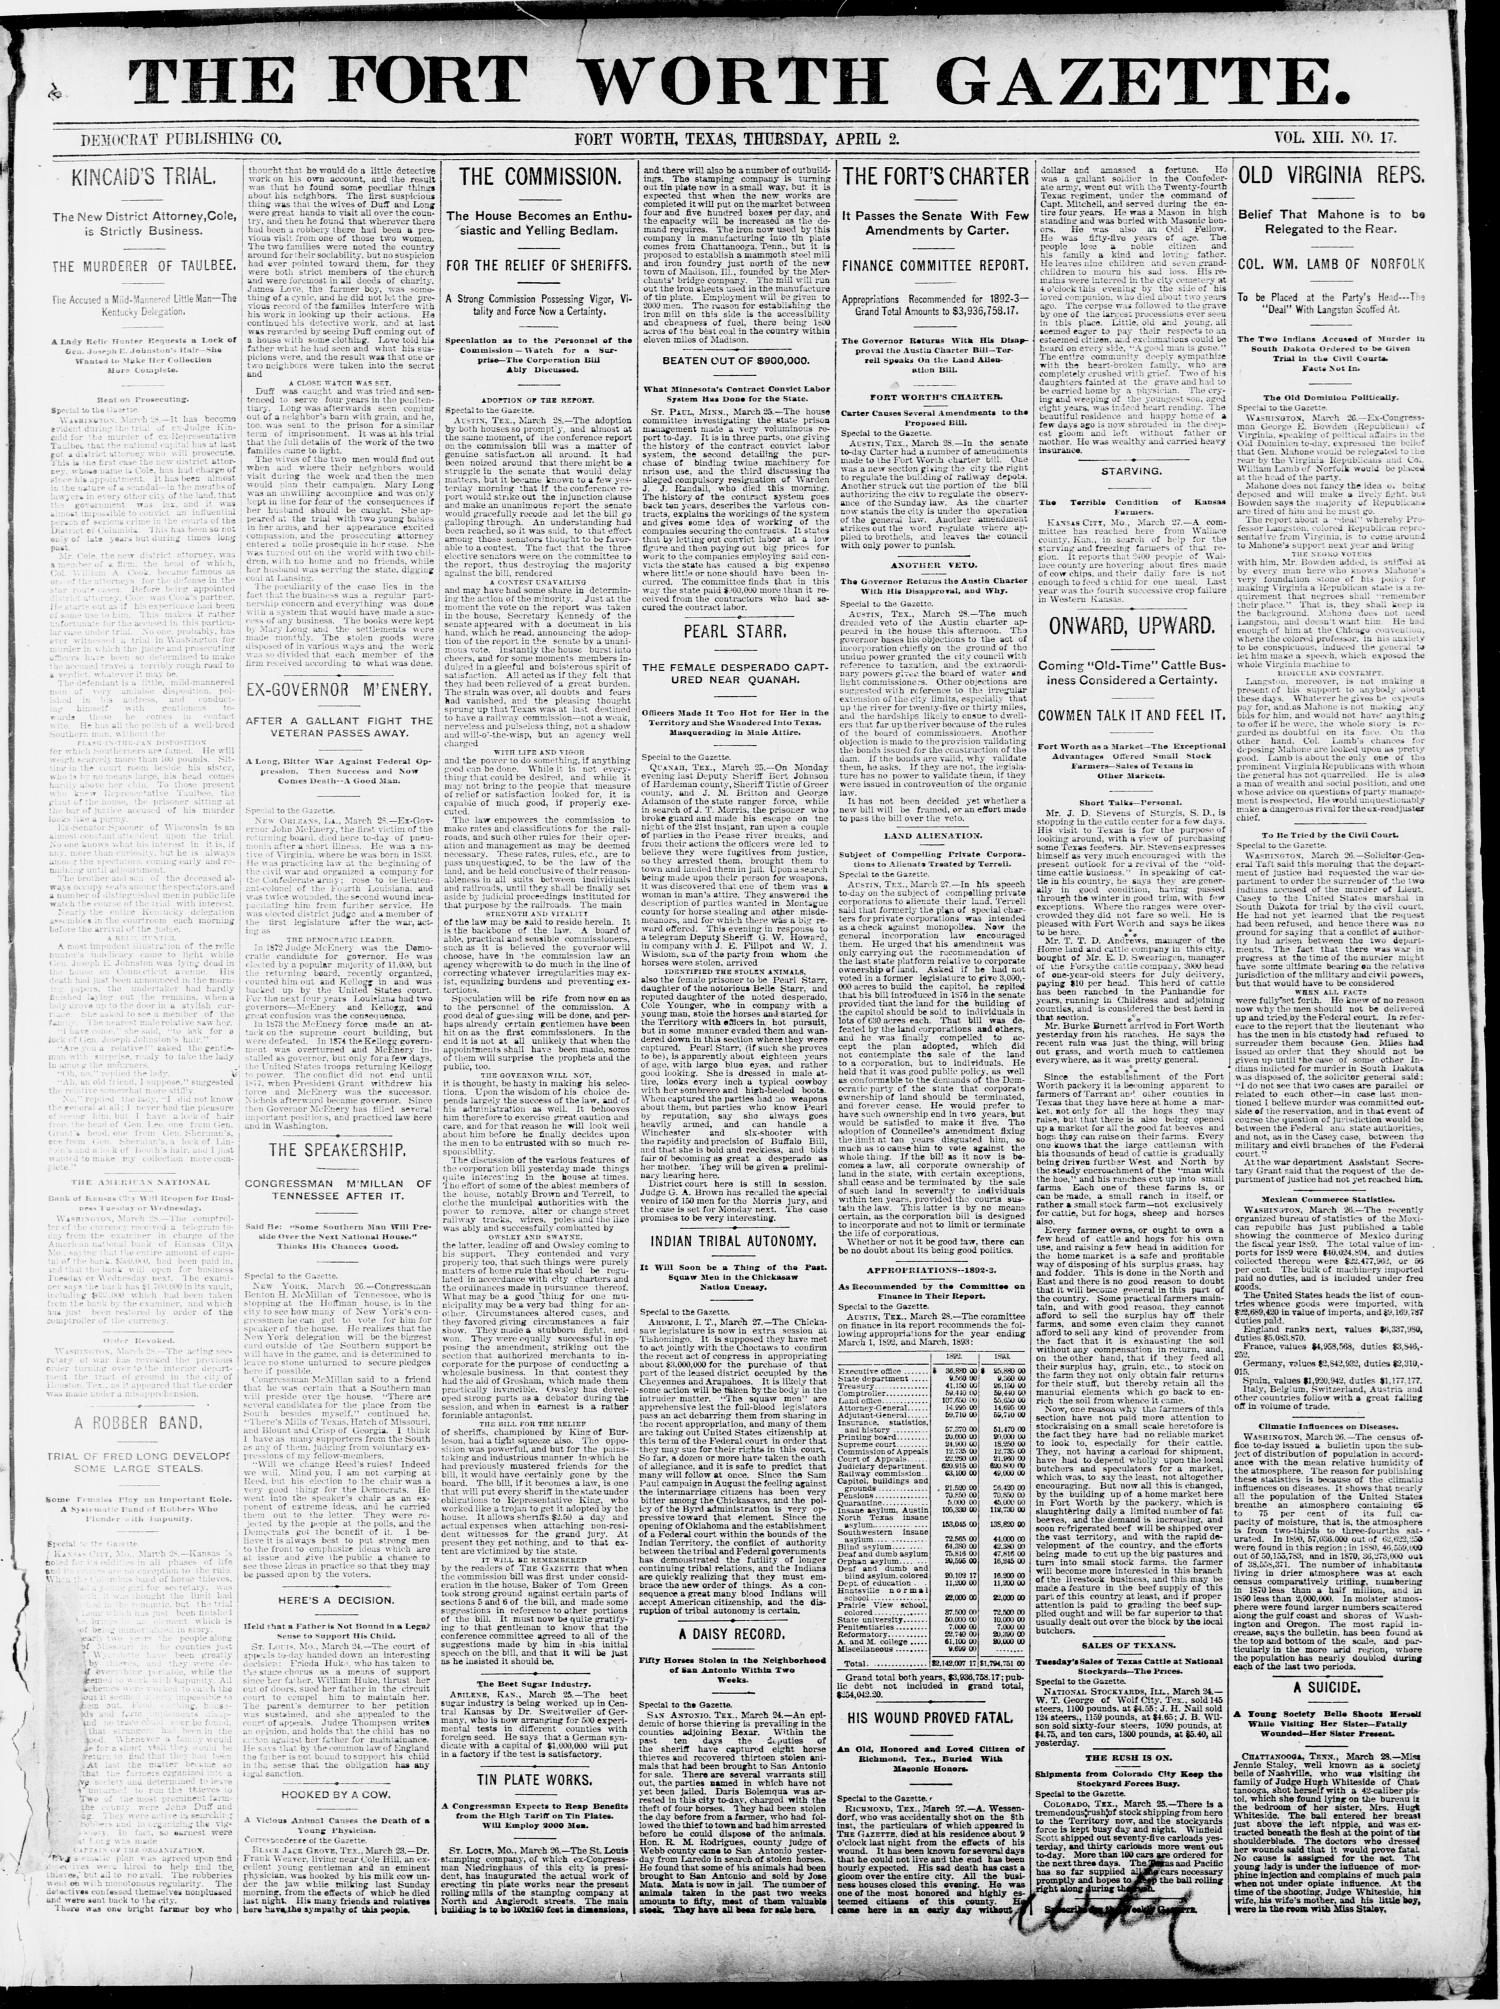 Fort Worth Gazette. (Fort Worth, Tex.), Vol. 13, No. 17, Ed. 1, Thursday, April 2, 1891                                                                                                      [Sequence #]: 1 of 20